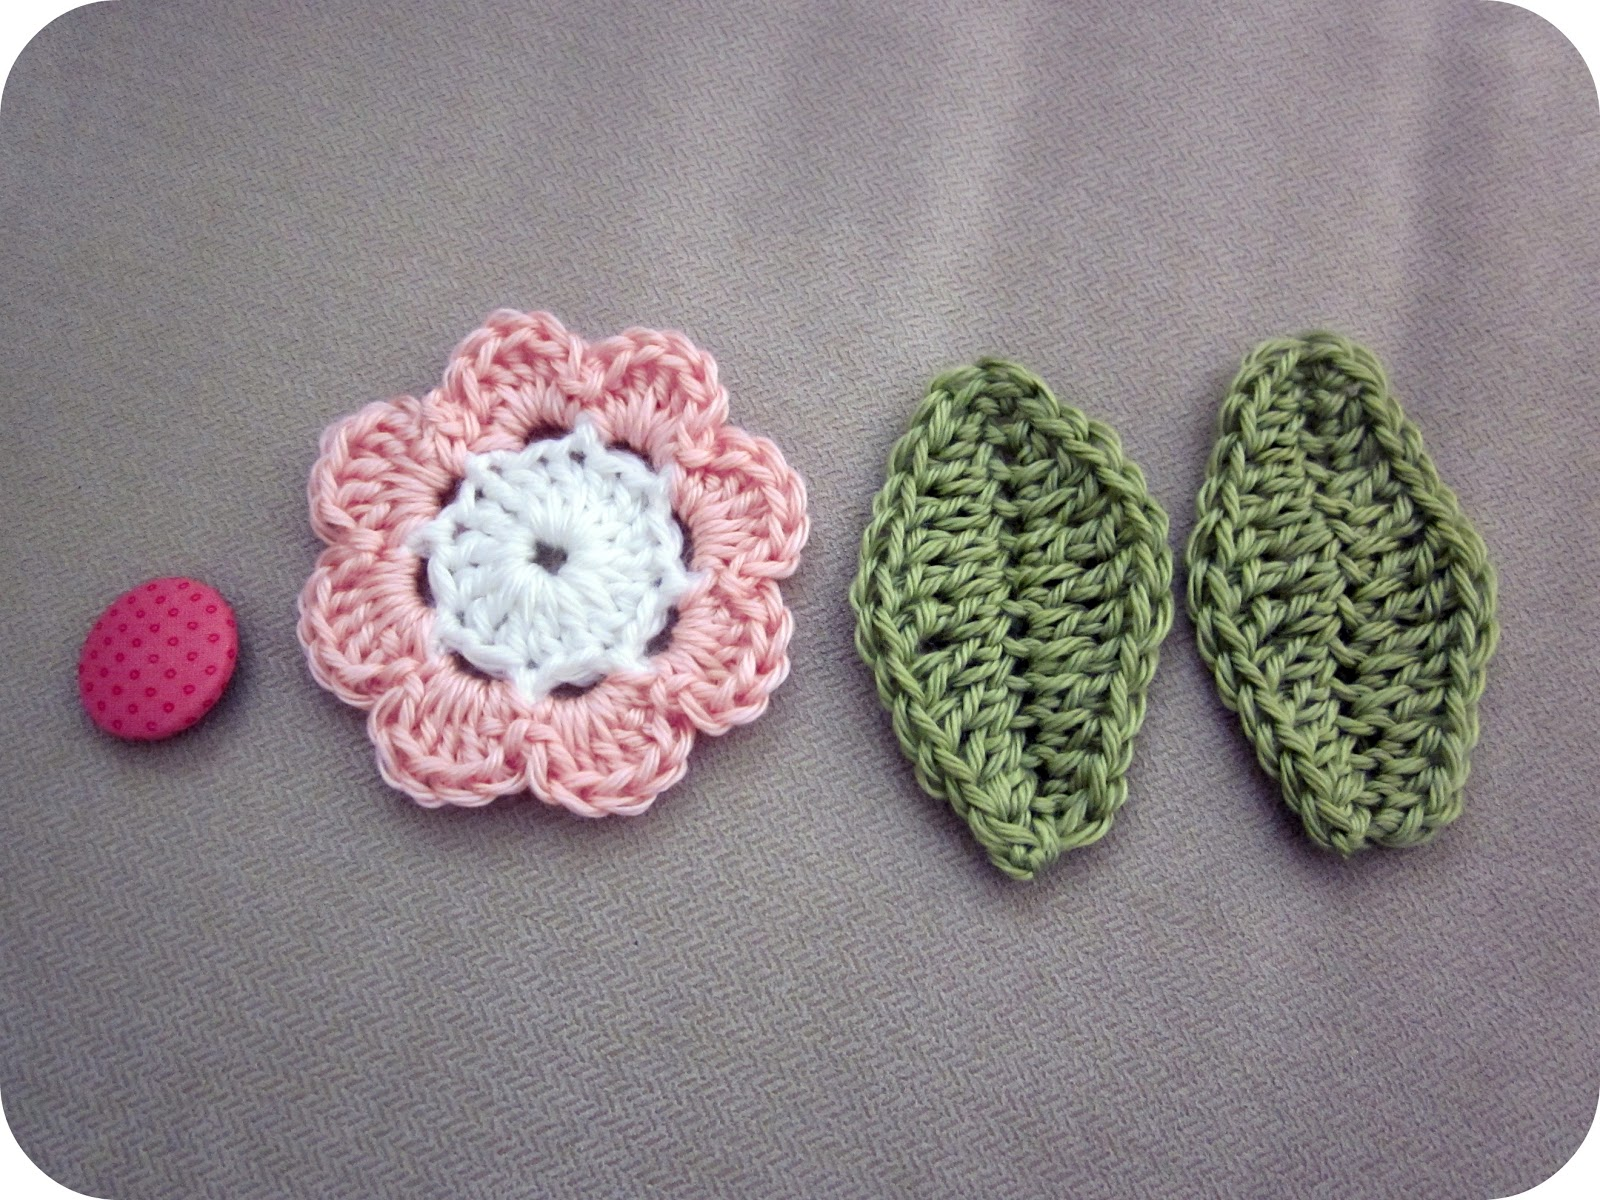 Crochet Patterns And Tutorials : TristinandCompany: Mini Tutorial: How to crochet leaves